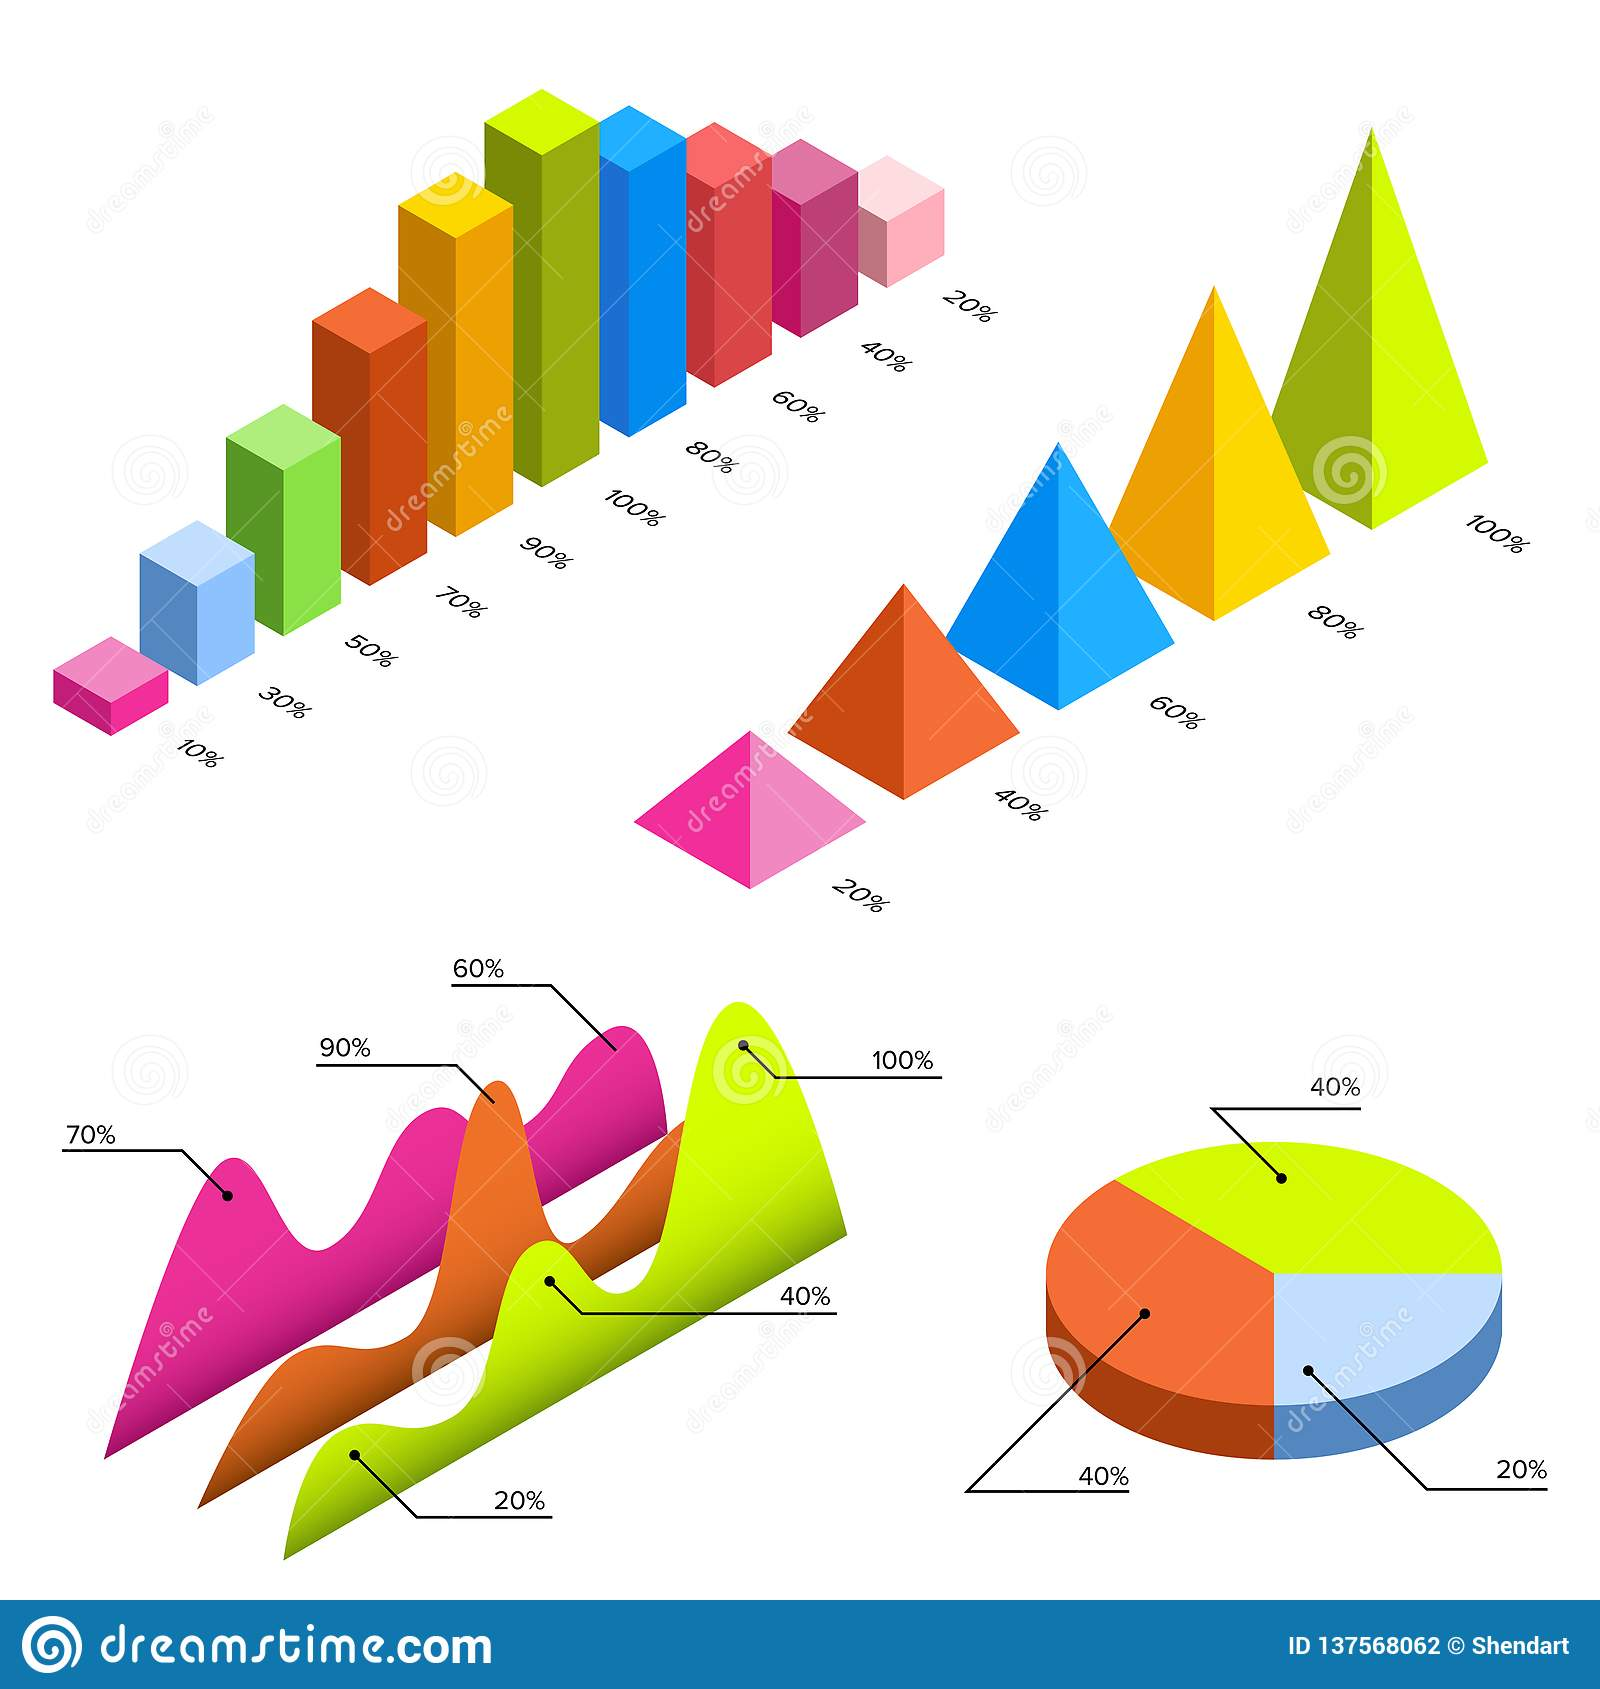 Flat 3d isometric infographic for your business presentations. Big set of infographics with data icons, charts and